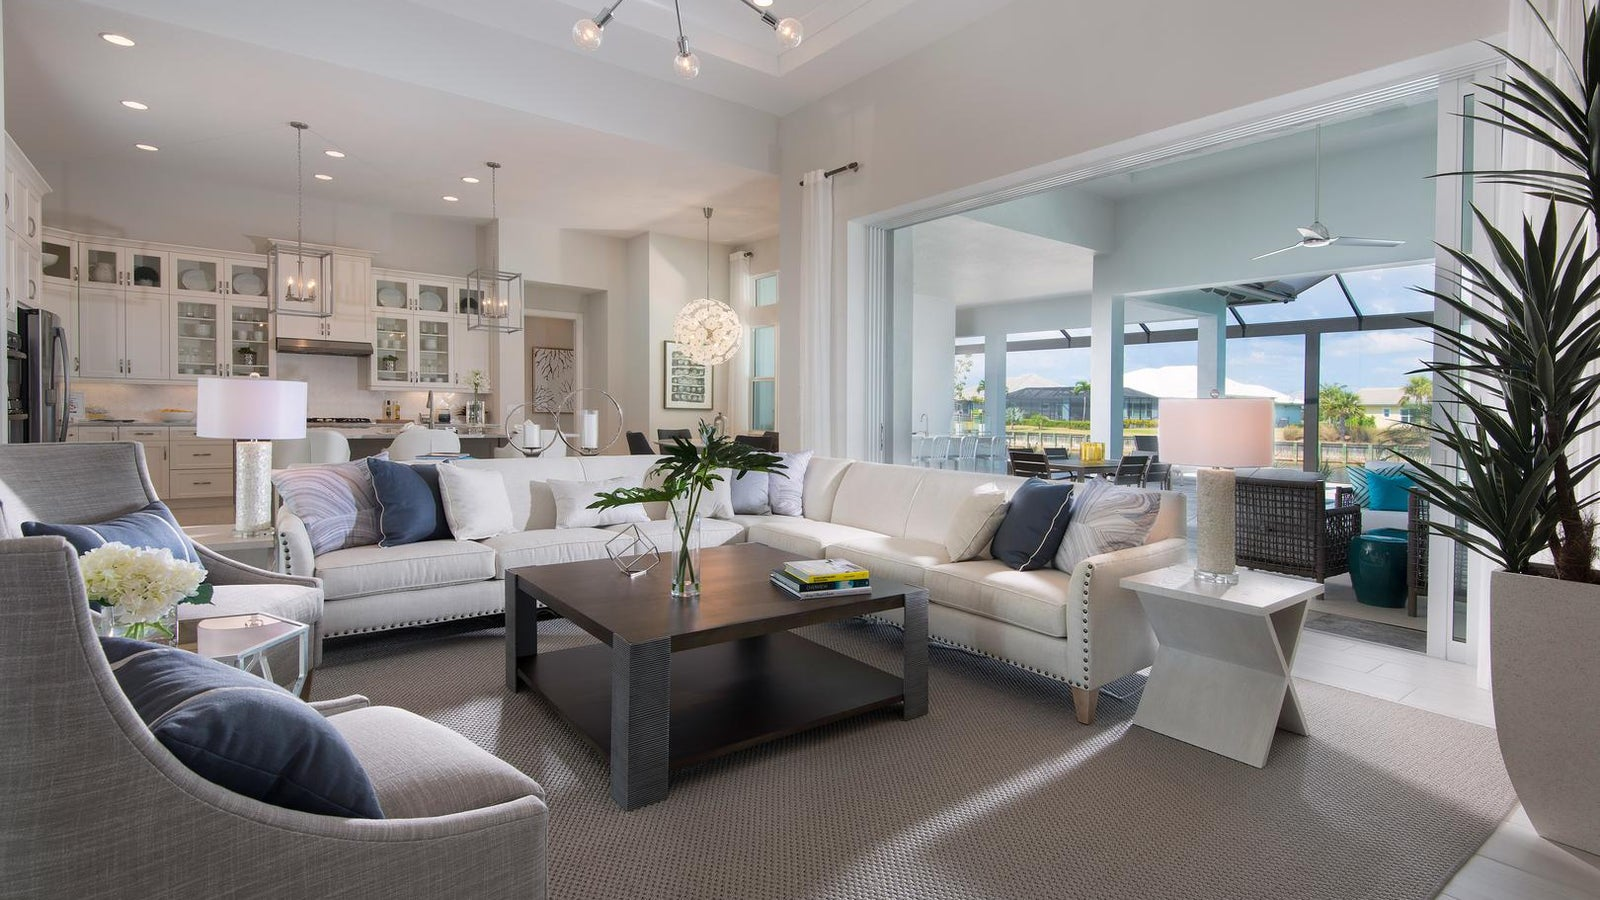 The Great Room of The Marigold by STOCK Signature Homes at The Isles of Collier Preserve in Naples Florida